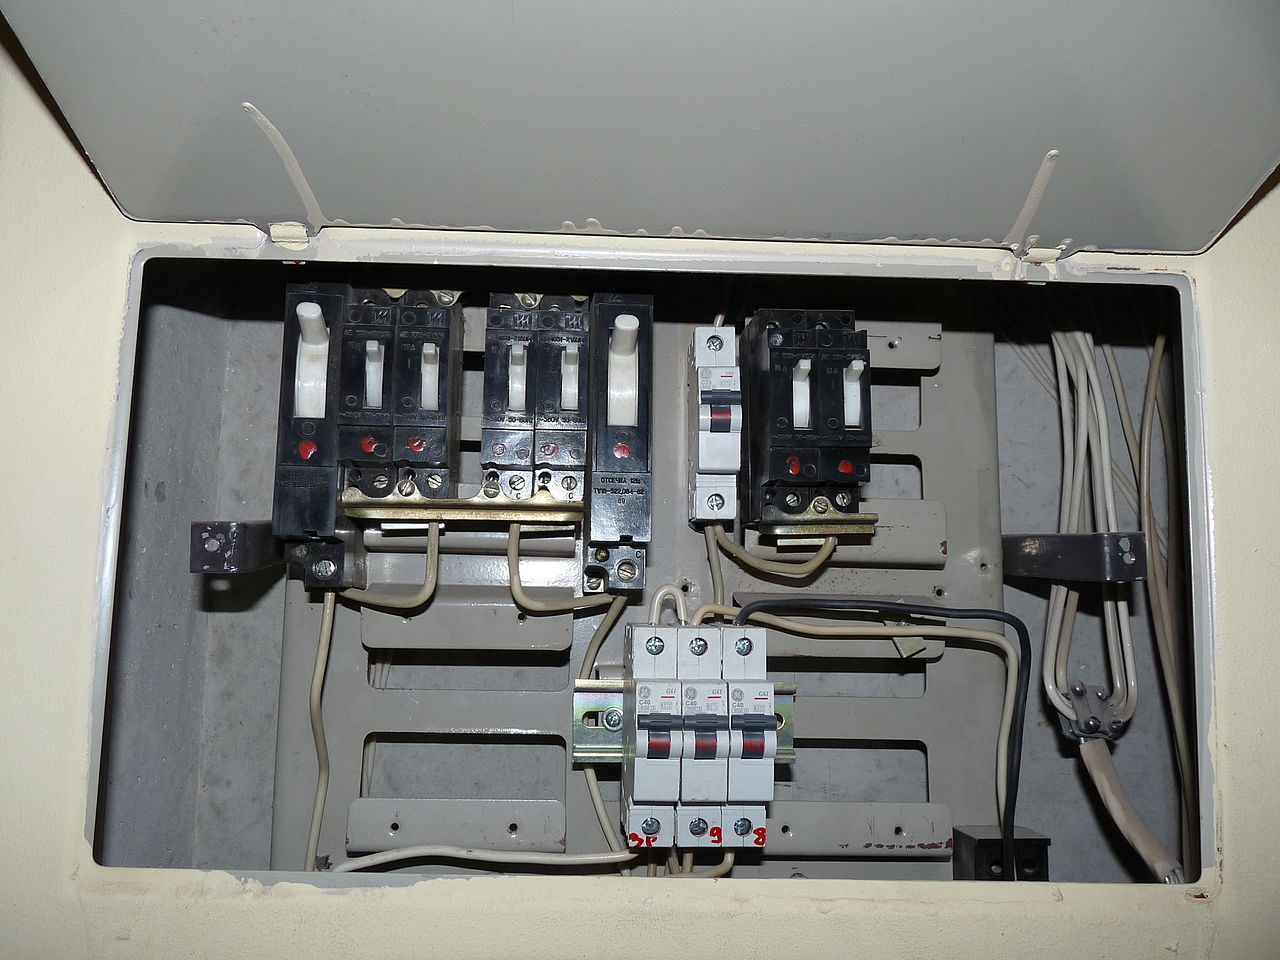 File Fuse Box In Old Apartment Building Jpg Wikimedia Commons Meter